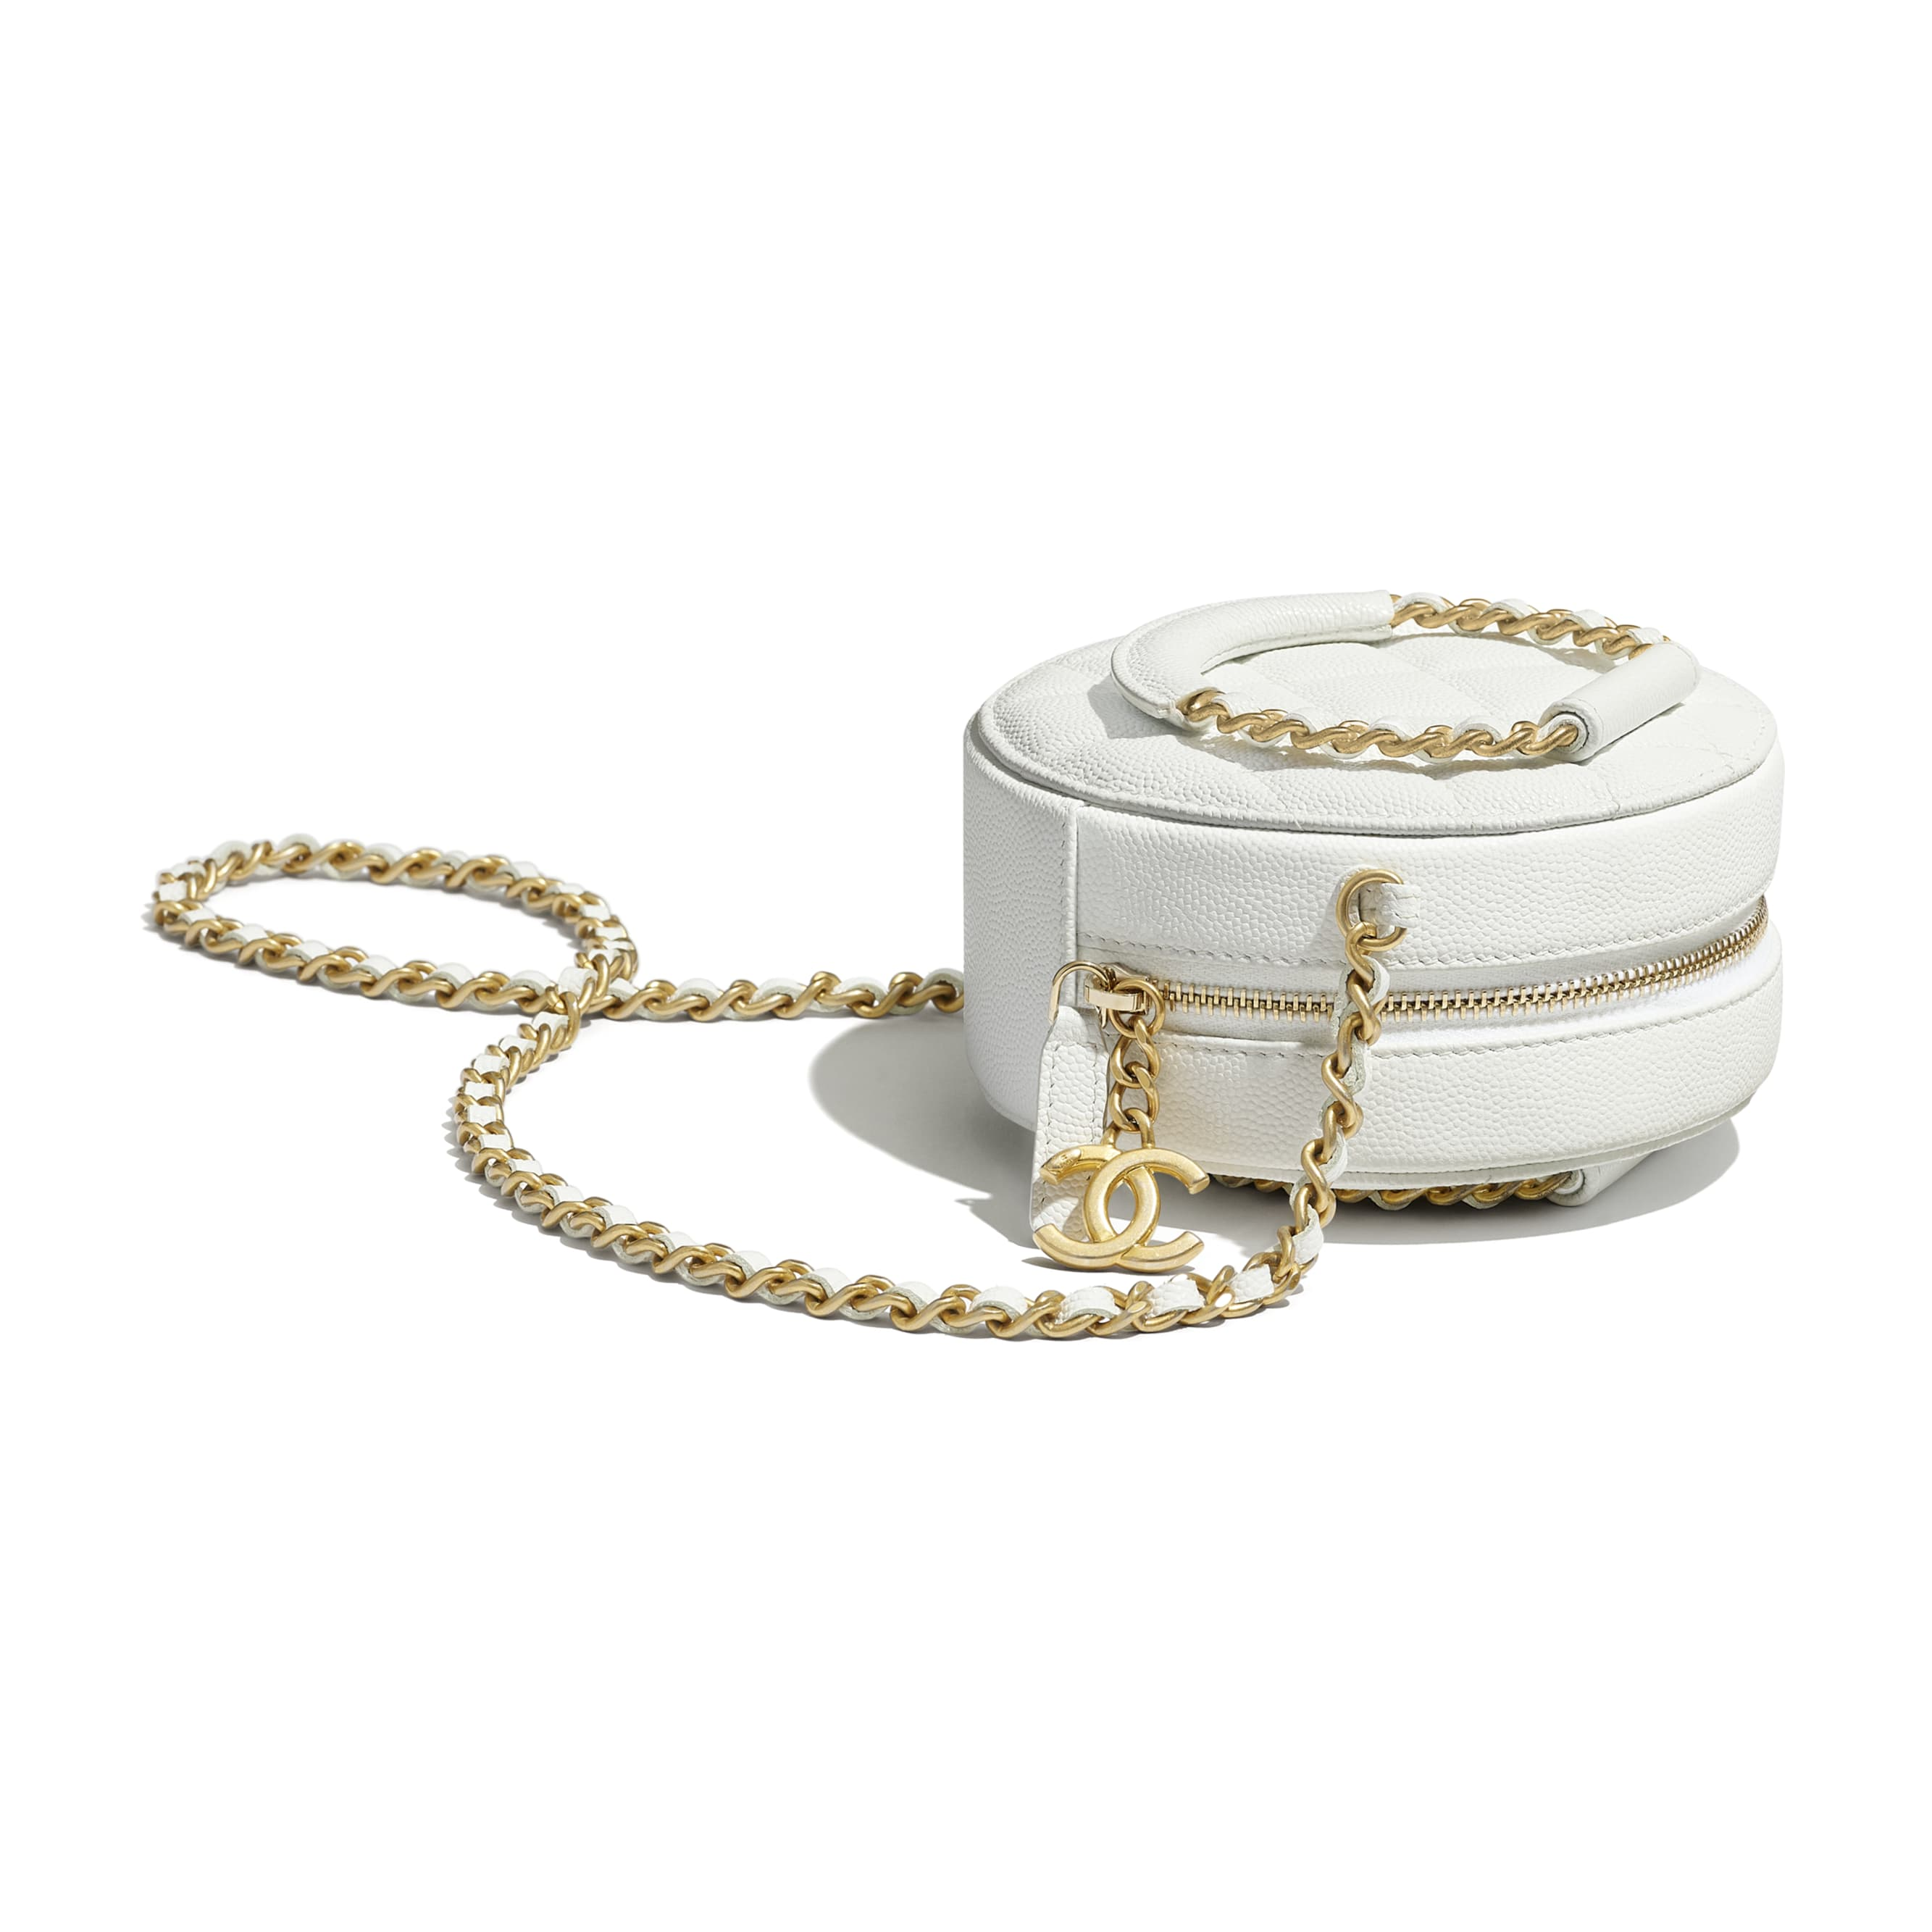 Clutch With Chain - White - Grained Shiny Calfskin & Gold-Tone Metal - Extra view - see standard sized version